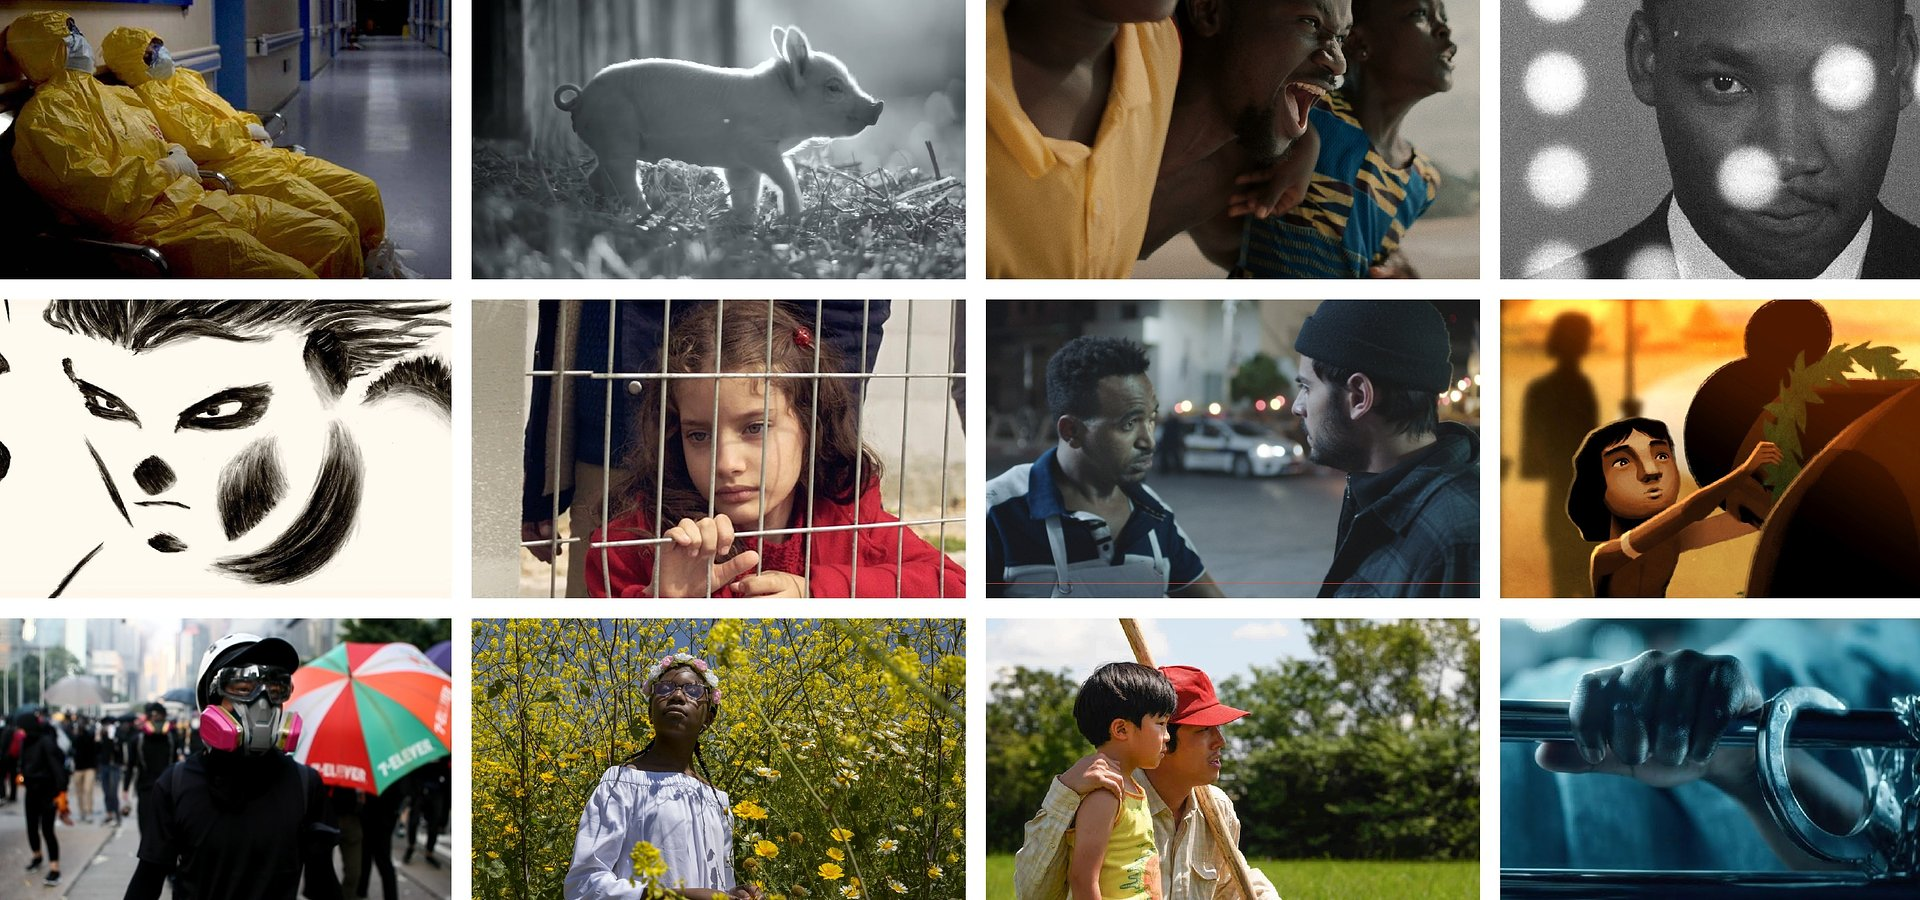 The 93rd ACADEMY AWARDS® SHORTLIST NOMINATIONS INCLUDE 15 FILMS SHOWCASED BY HEARTLAND FILM'S FESTIVALS